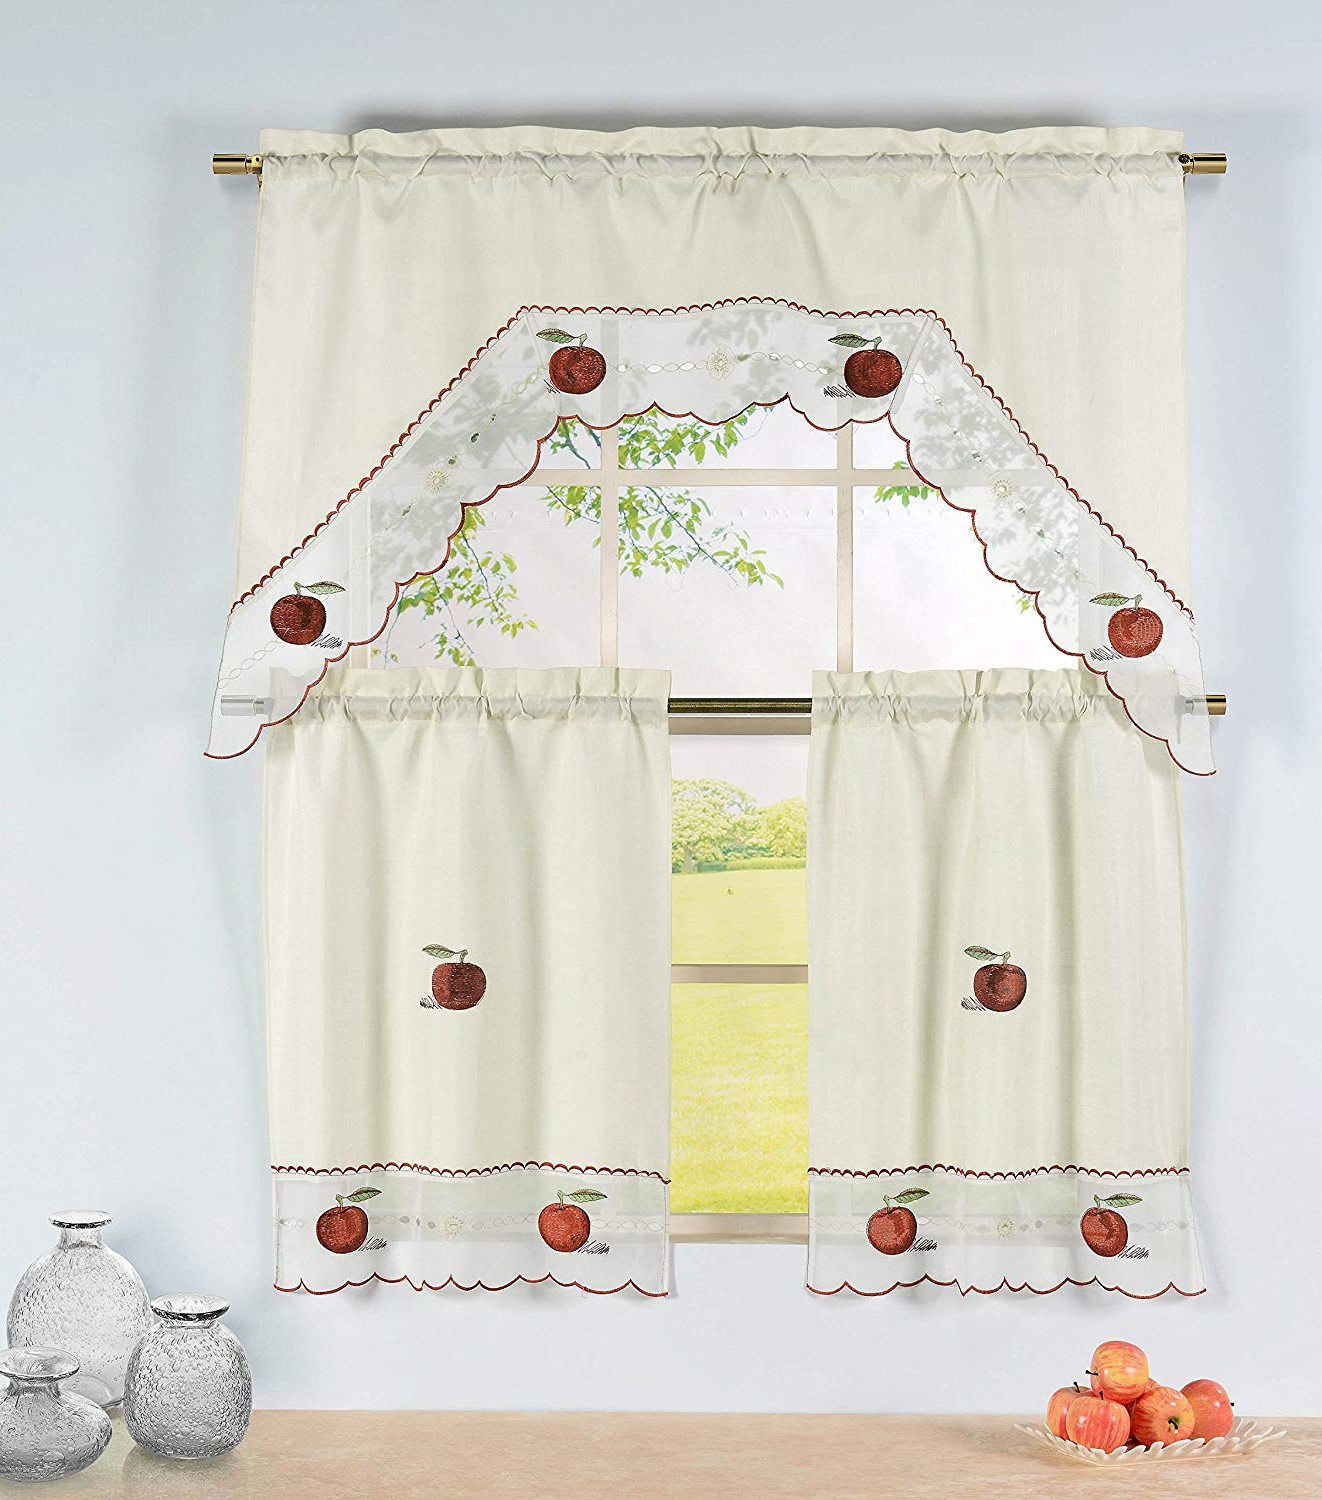 Most Recent Window Elements Embroidered 3 Piece Kitchen Tier And Valance 60 X 72 Set With Scalloped Border, Apple Time Inside Delicious Apples Kitchen Curtain Tier And Valance Sets (View 14 of 20)